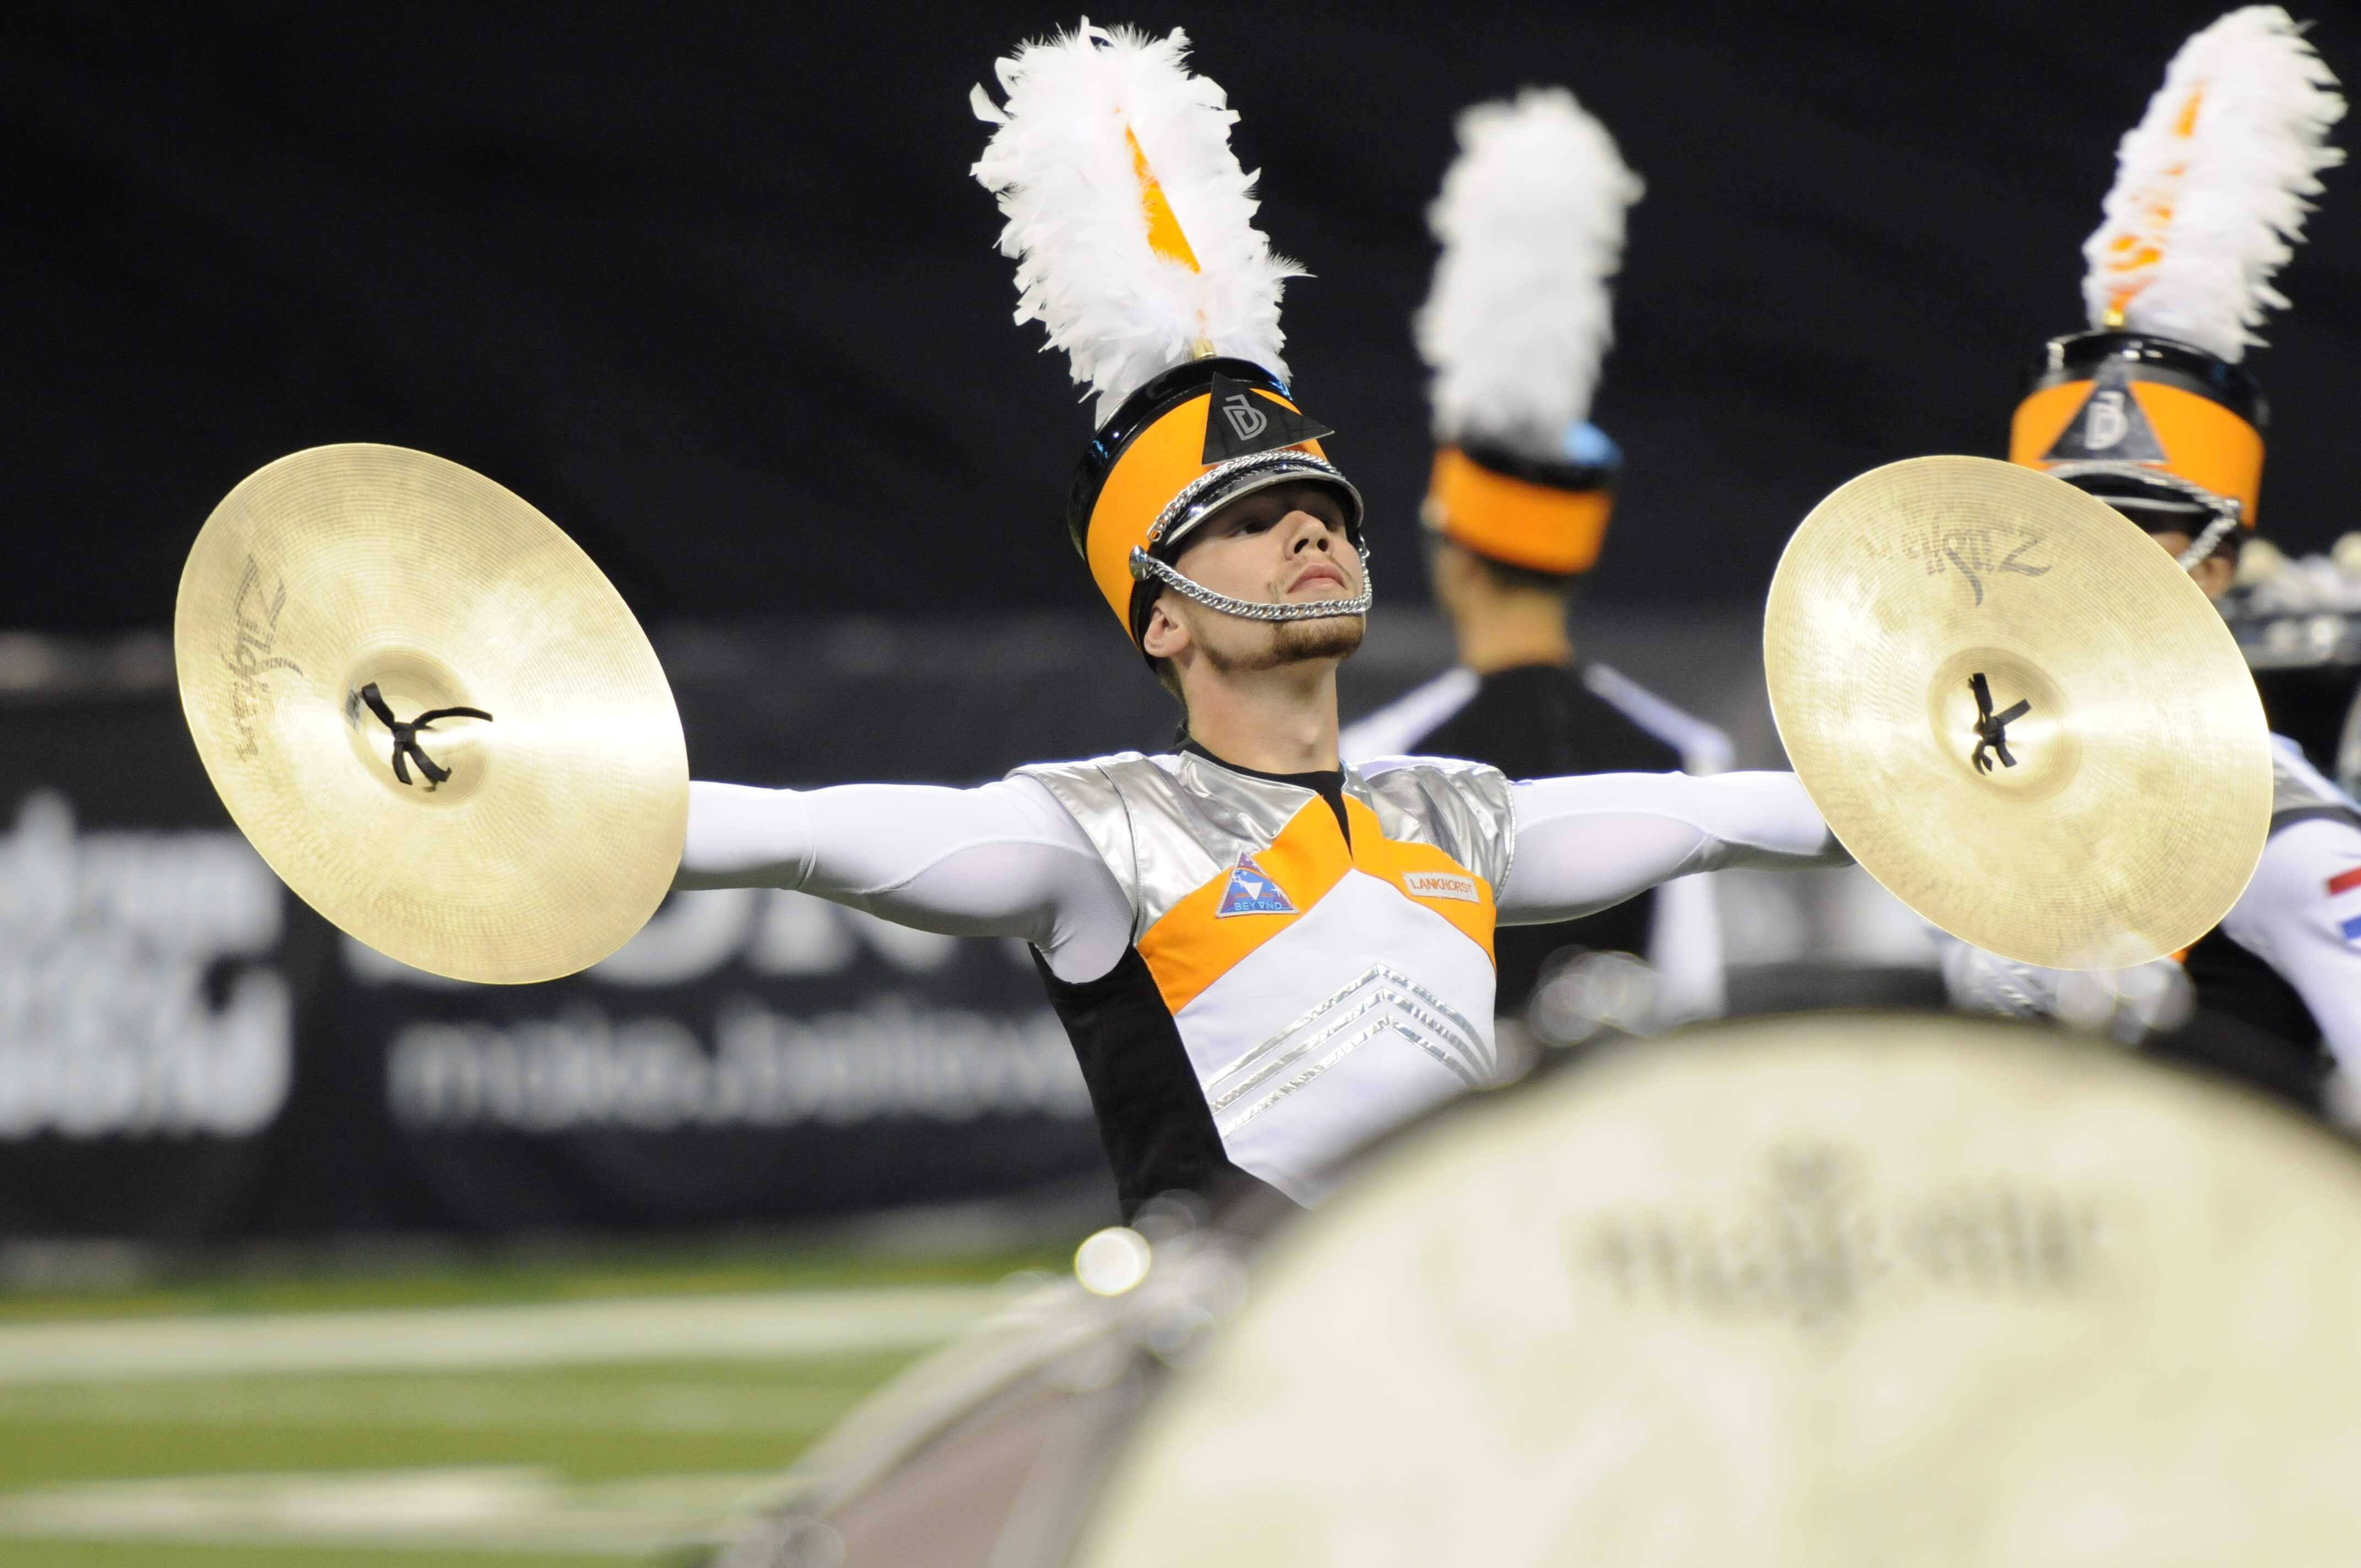 QUIZ: Which countries do these European drum corps call home?